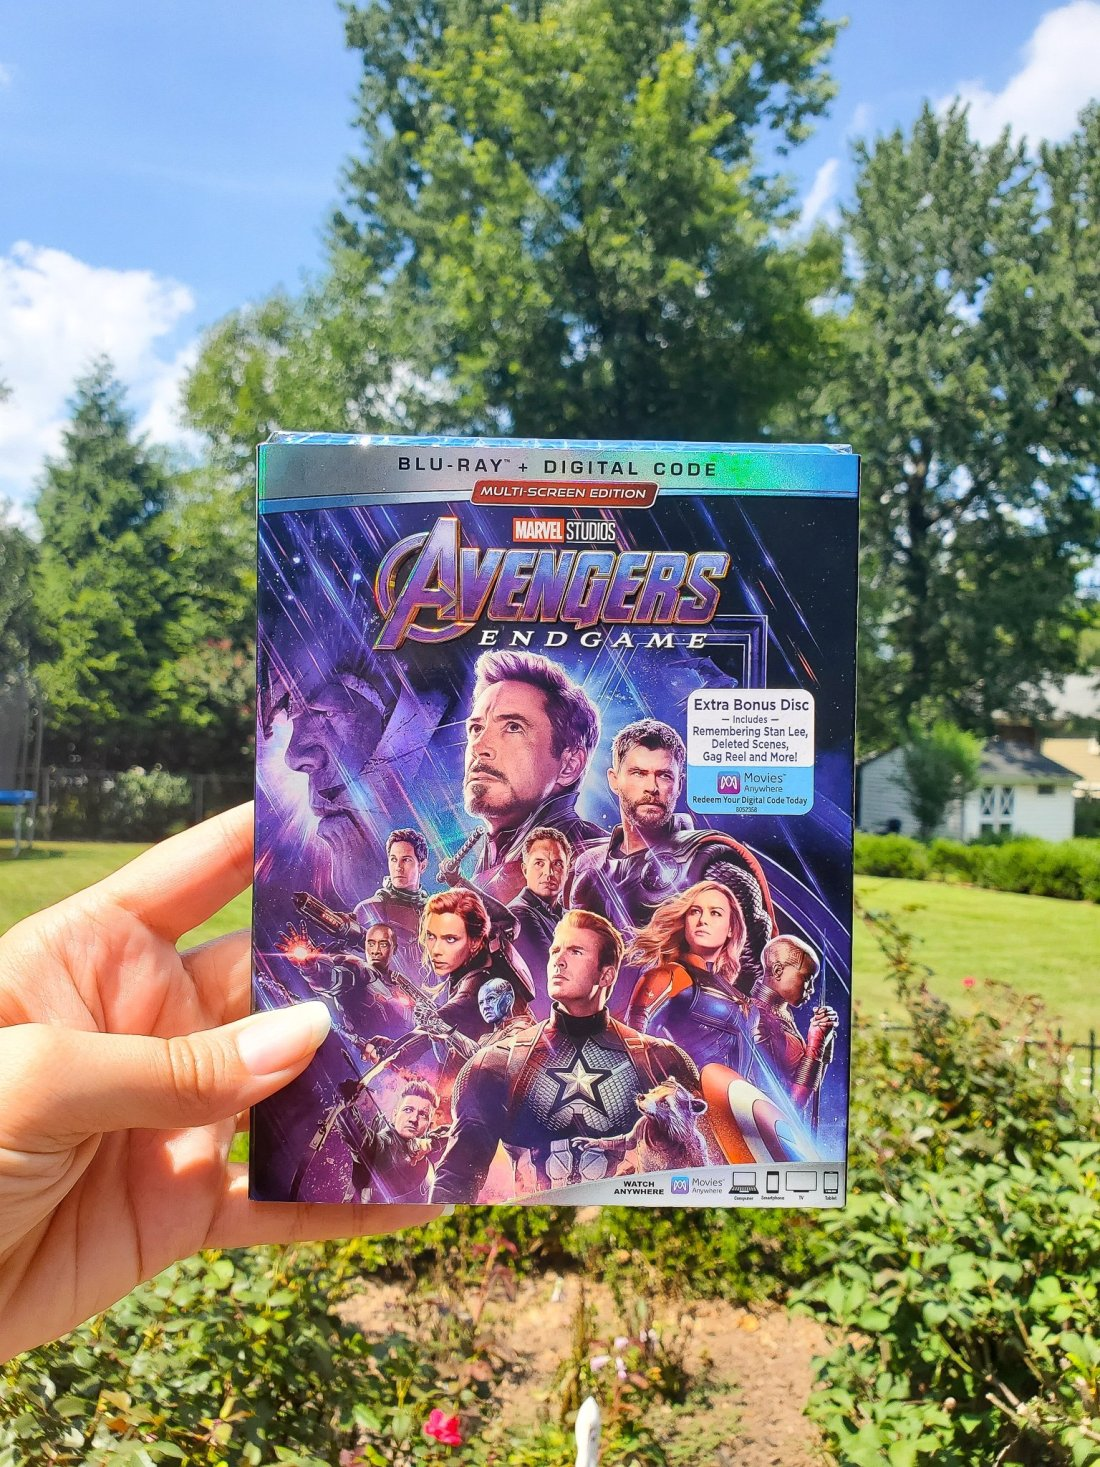 Avengers: Endgame Blu-Ray. Avengers: Endgame arrives on DVD, Blu-ray, and 4K on August 13th. Packed with bonus material and a special tribute to Stan Lee.